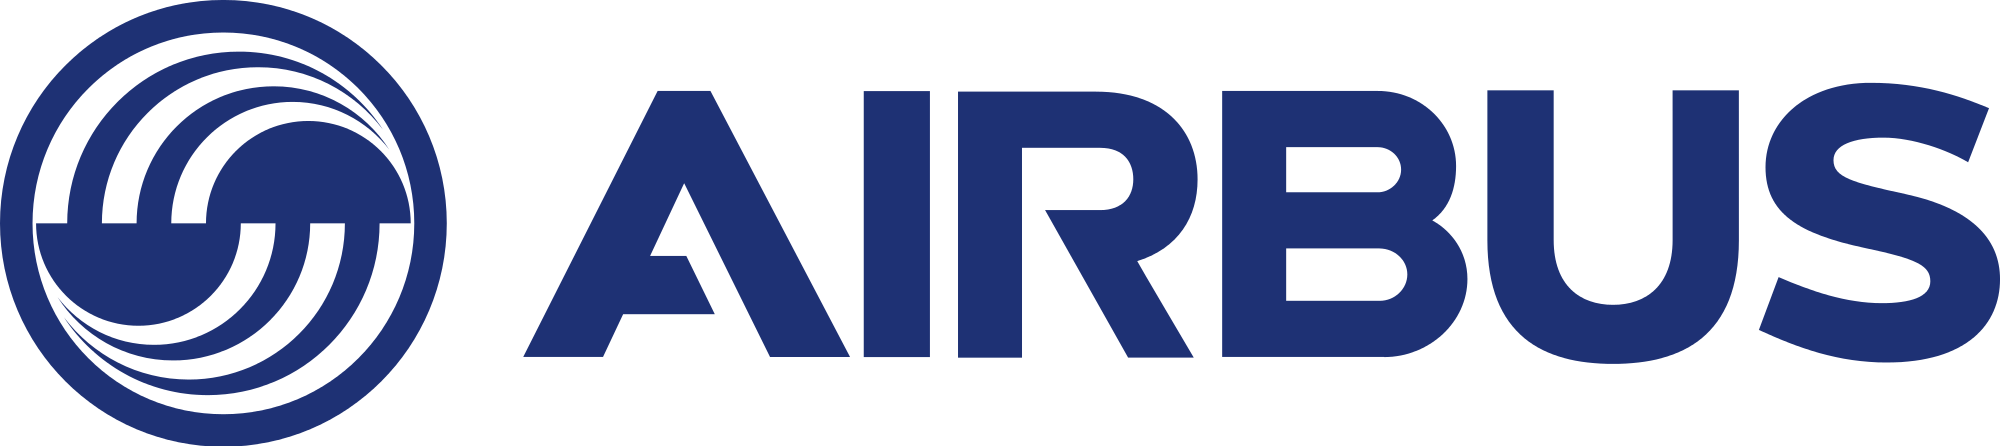 Airbus_Isologotype_svg